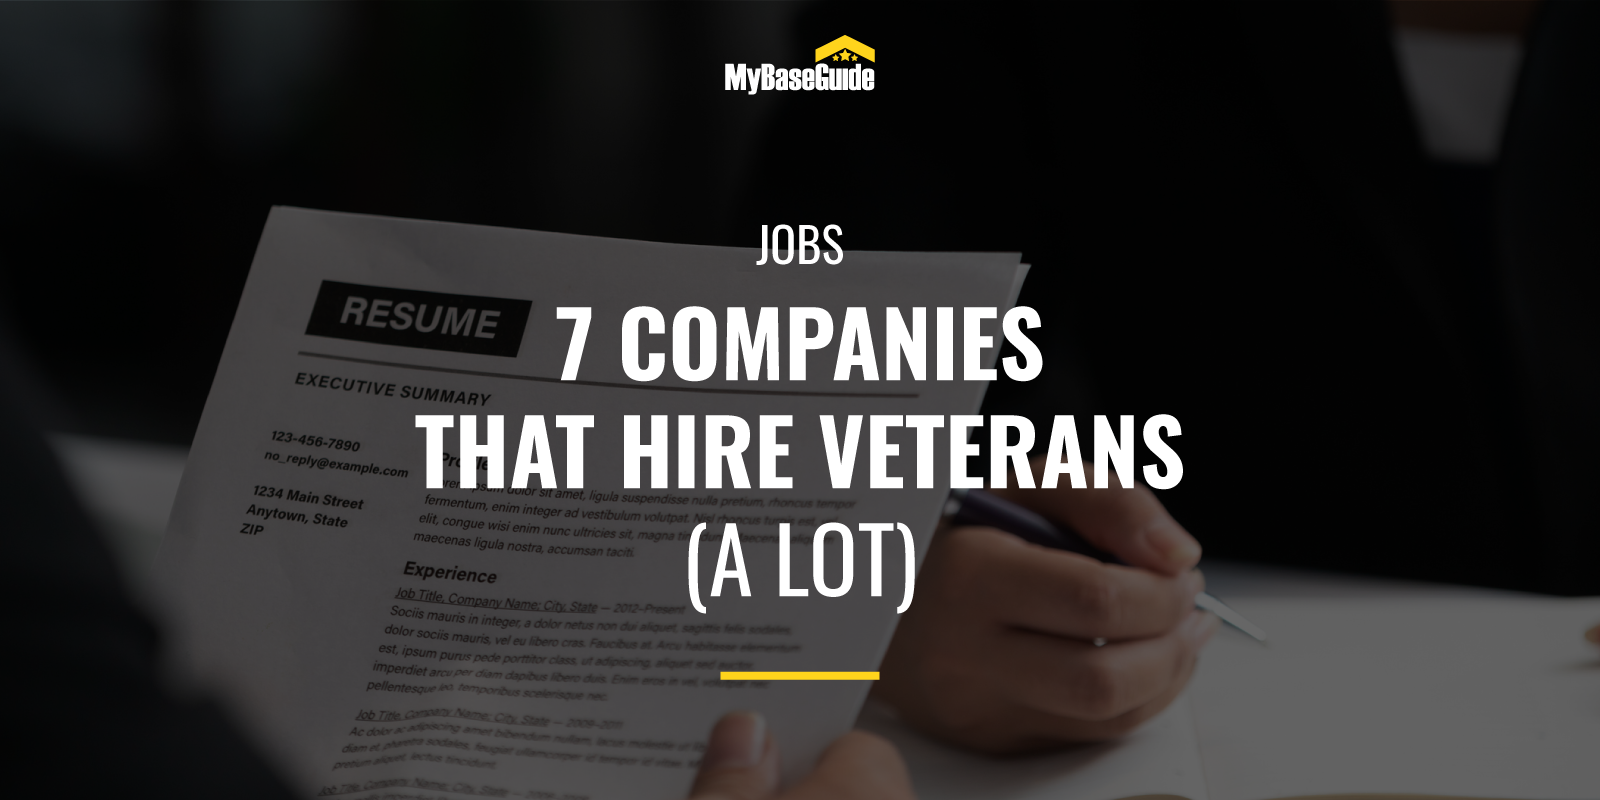 7 Companies that Hire Veterans (A Lot)